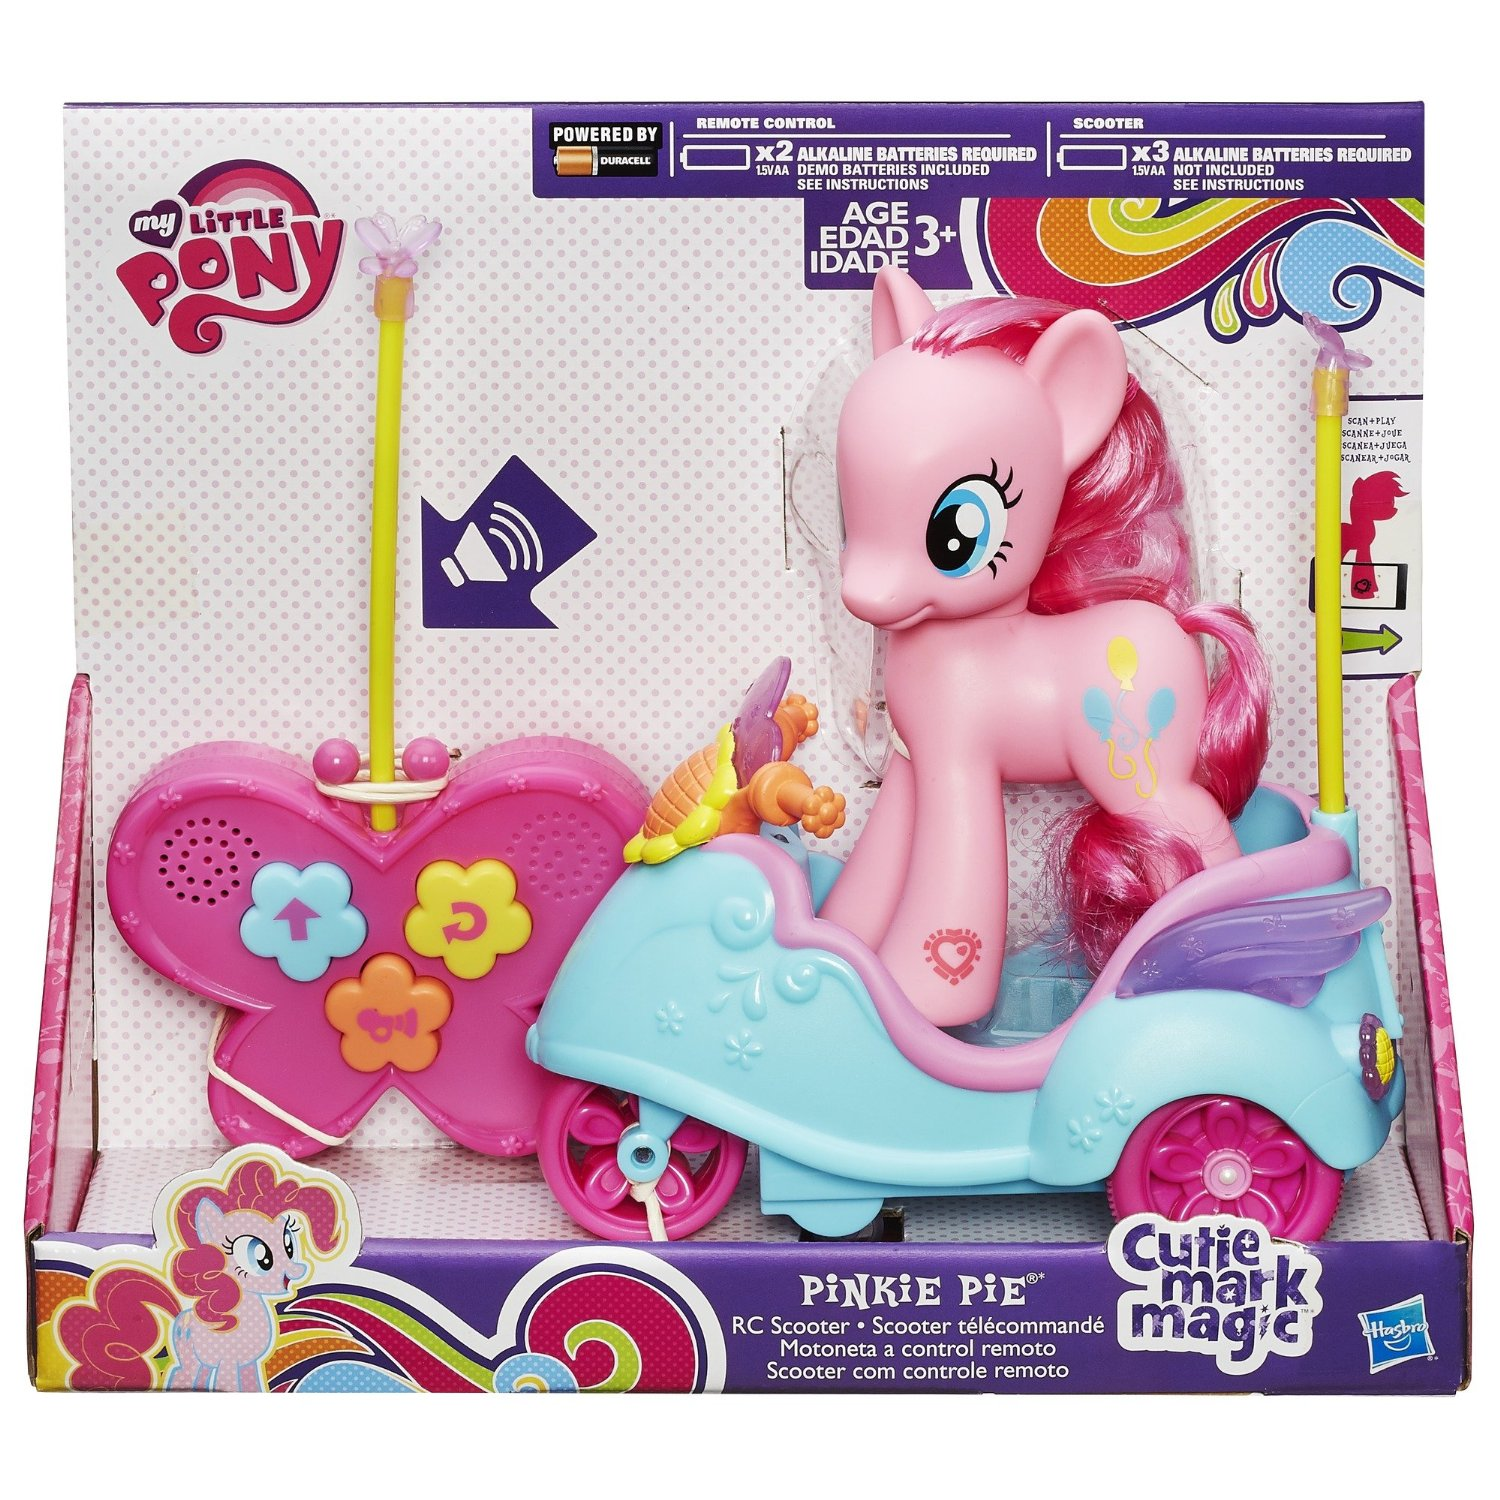 Pinkie Pie Rc Scooter Available On French Amazon Mlp Merch Scootaloo is also cheerilee's younger sister in generation 3; pinkie pie rc scooter available on